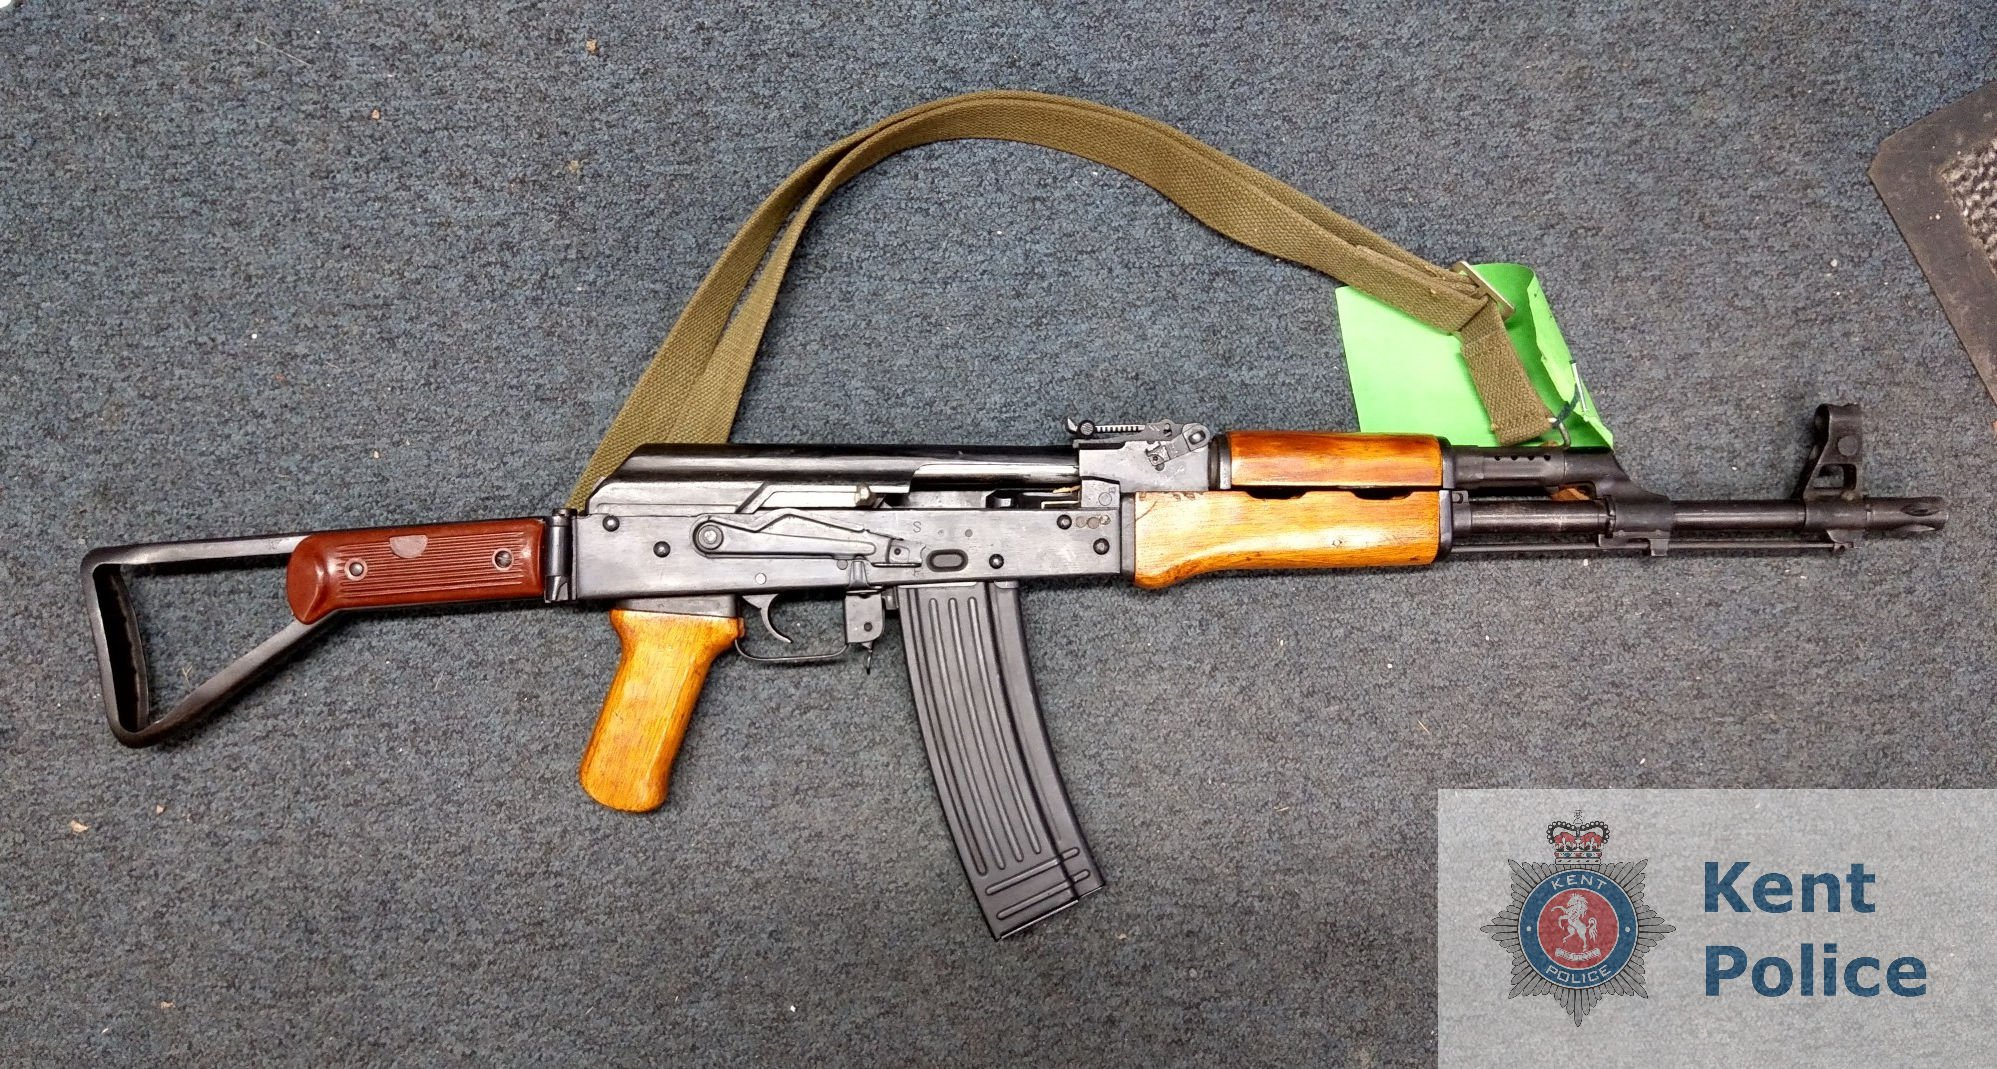 Undated handout photo issued by Kent Police of a deactivated Kalashnikov AK-47 assault rifle which was handed in to officers on 24 January along with magazine and dummy rounds as part of a firearms surrender initiative by Kent Police. PRESS ASSOCIATION Photo. Issue date: Thursday February 14, 2019. The initiative, which ran between Monday 21 January and Wednesday 6 February, saw a total of 172 firearms and 3,857 rounds of ammunition being handed over to officers. See PA story POLICE Kent. Photo credit should read: Kent Police/PA Wire NOTE TO EDITORS: This handout photo may only be used in for editorial reporting purposes for the contemporaneous illustration of events, things or the people in the image or facts mentioned in the caption. Reuse of the picture may require further permission from the copyright holder.